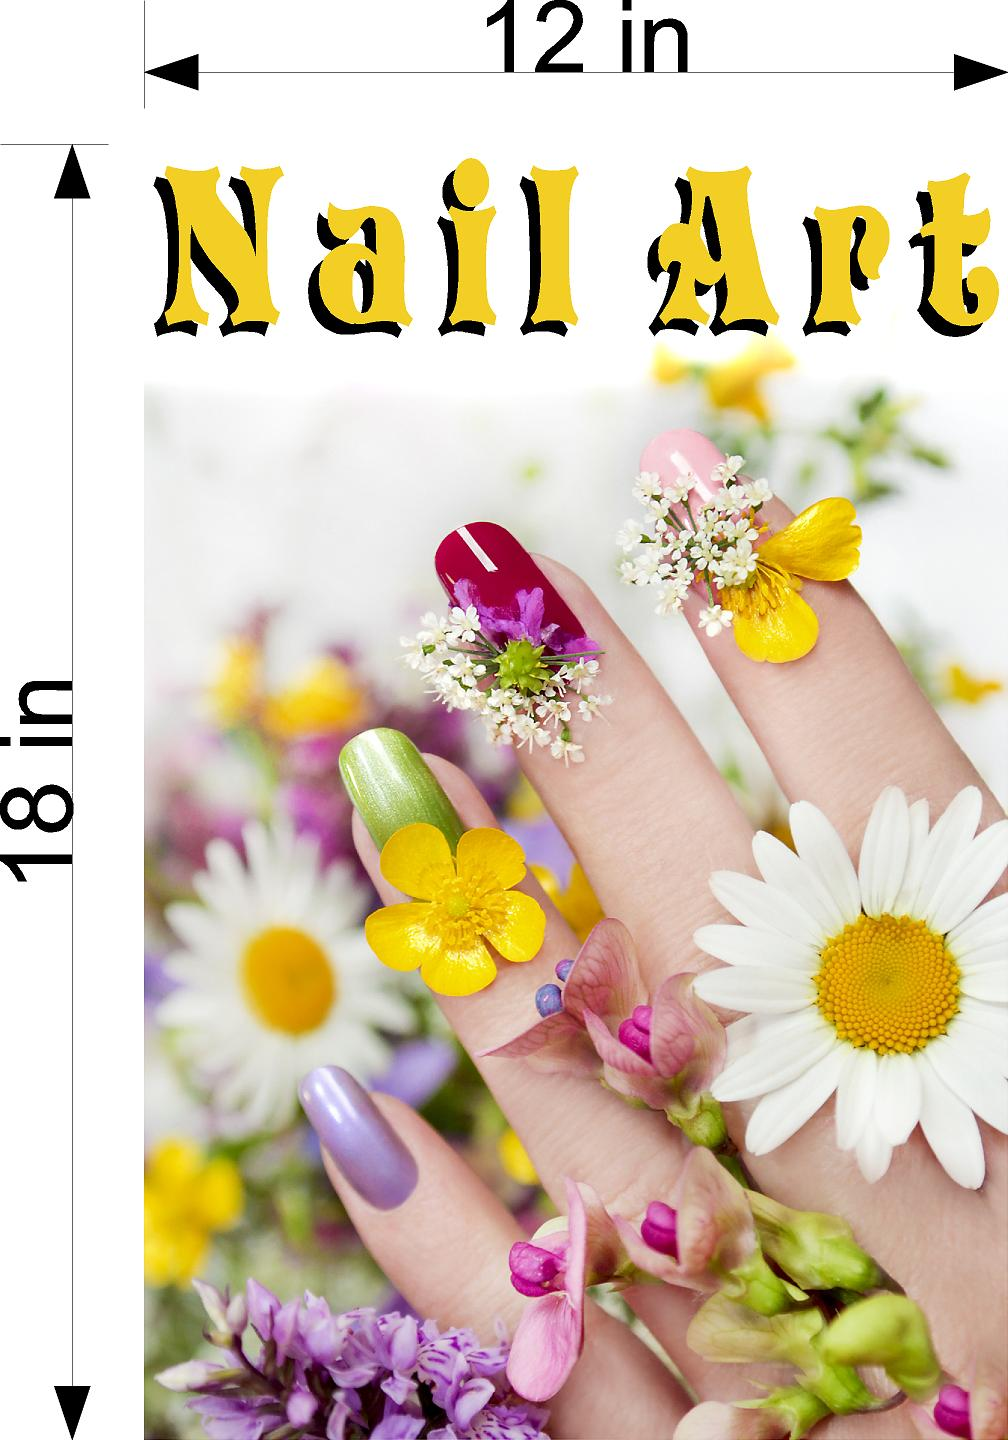 Nail Art 05 Wallpaper Poster Decal with Adhesive Backing Wall Sticker Decor Indoors Interior Sign Vertical